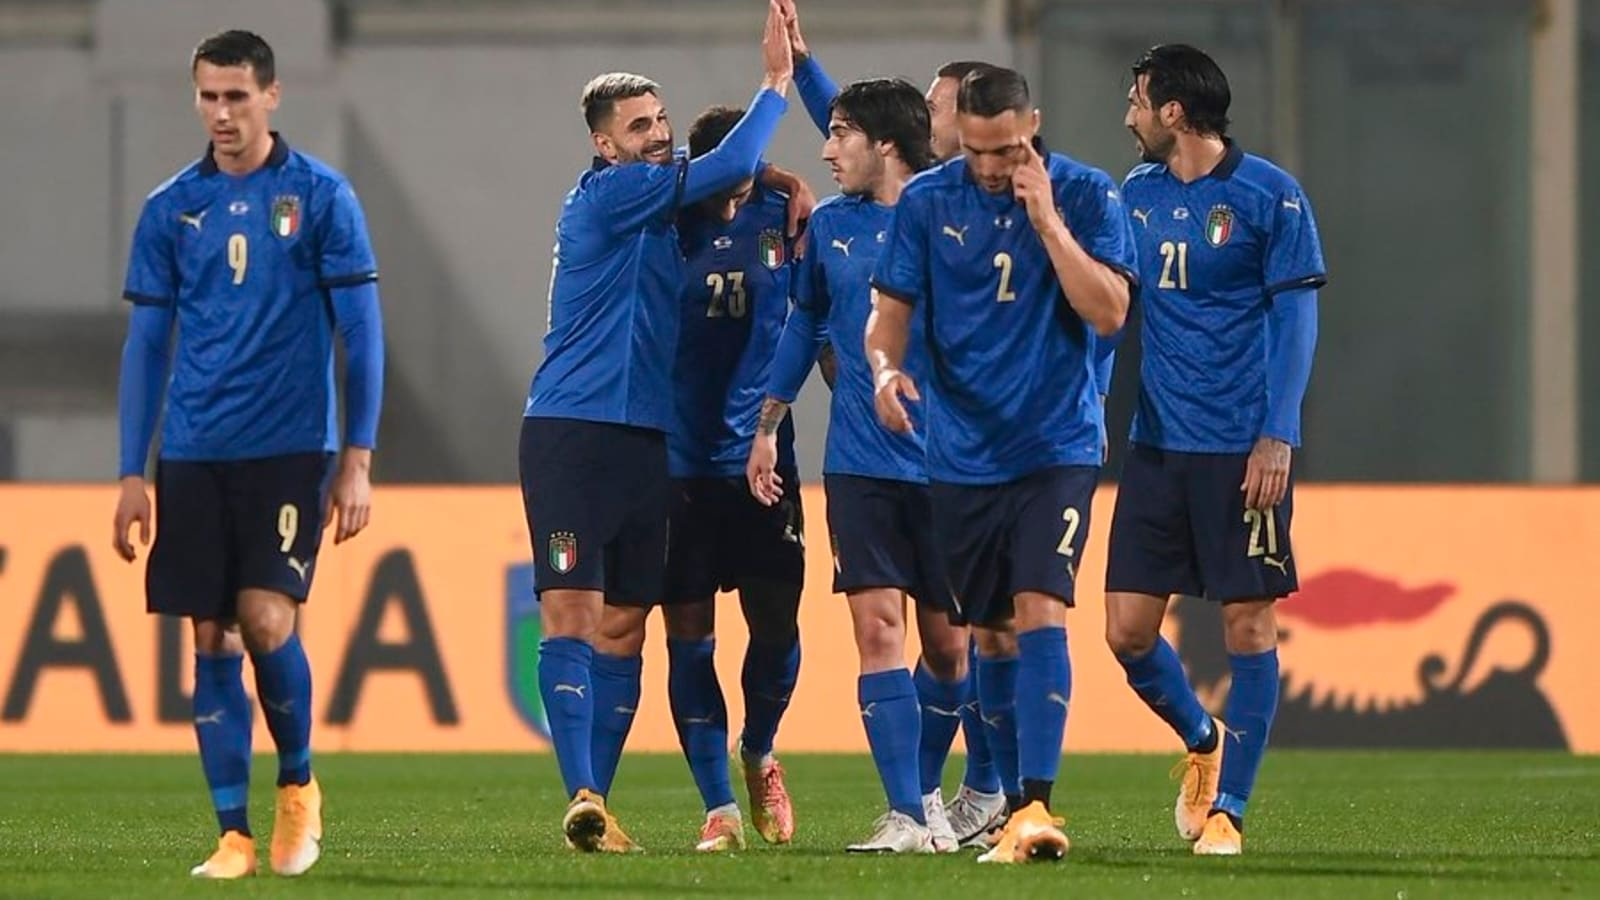 EURO 2020: Italy transformed after World Cup failure | Football News -  Hindustan Times